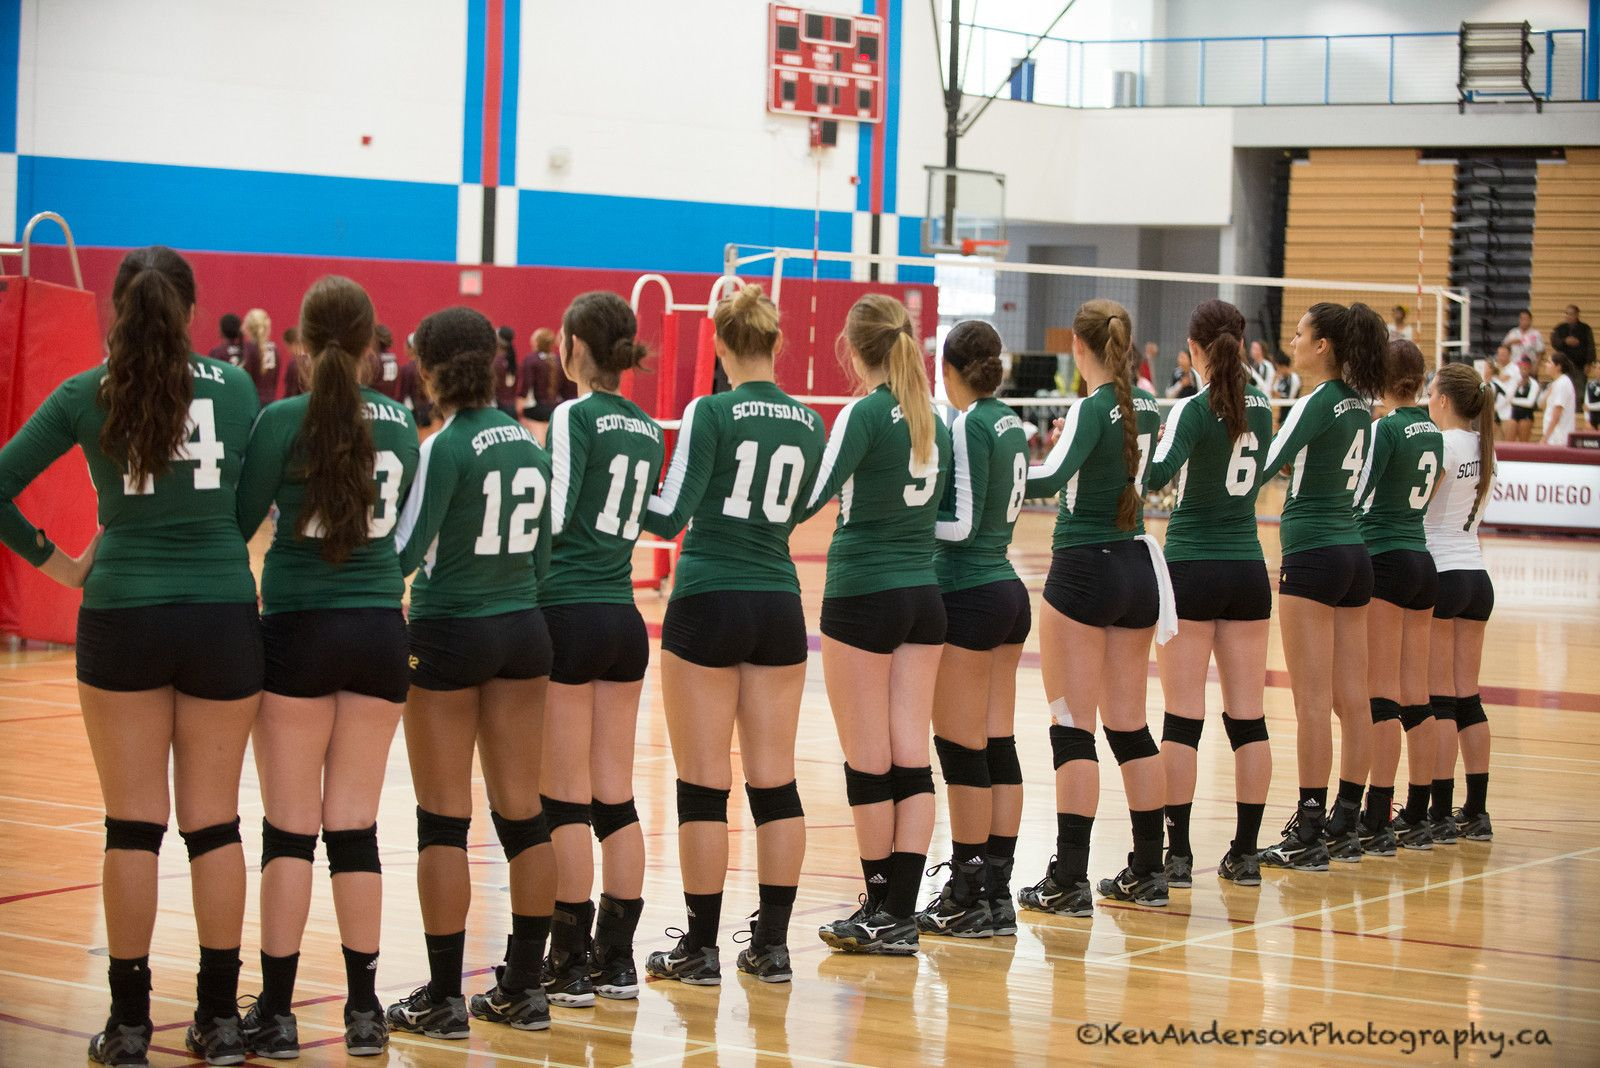 Scottsdale Community College Volleyball 2013 2014 Volleyball Images The Miracle Season Volleyball